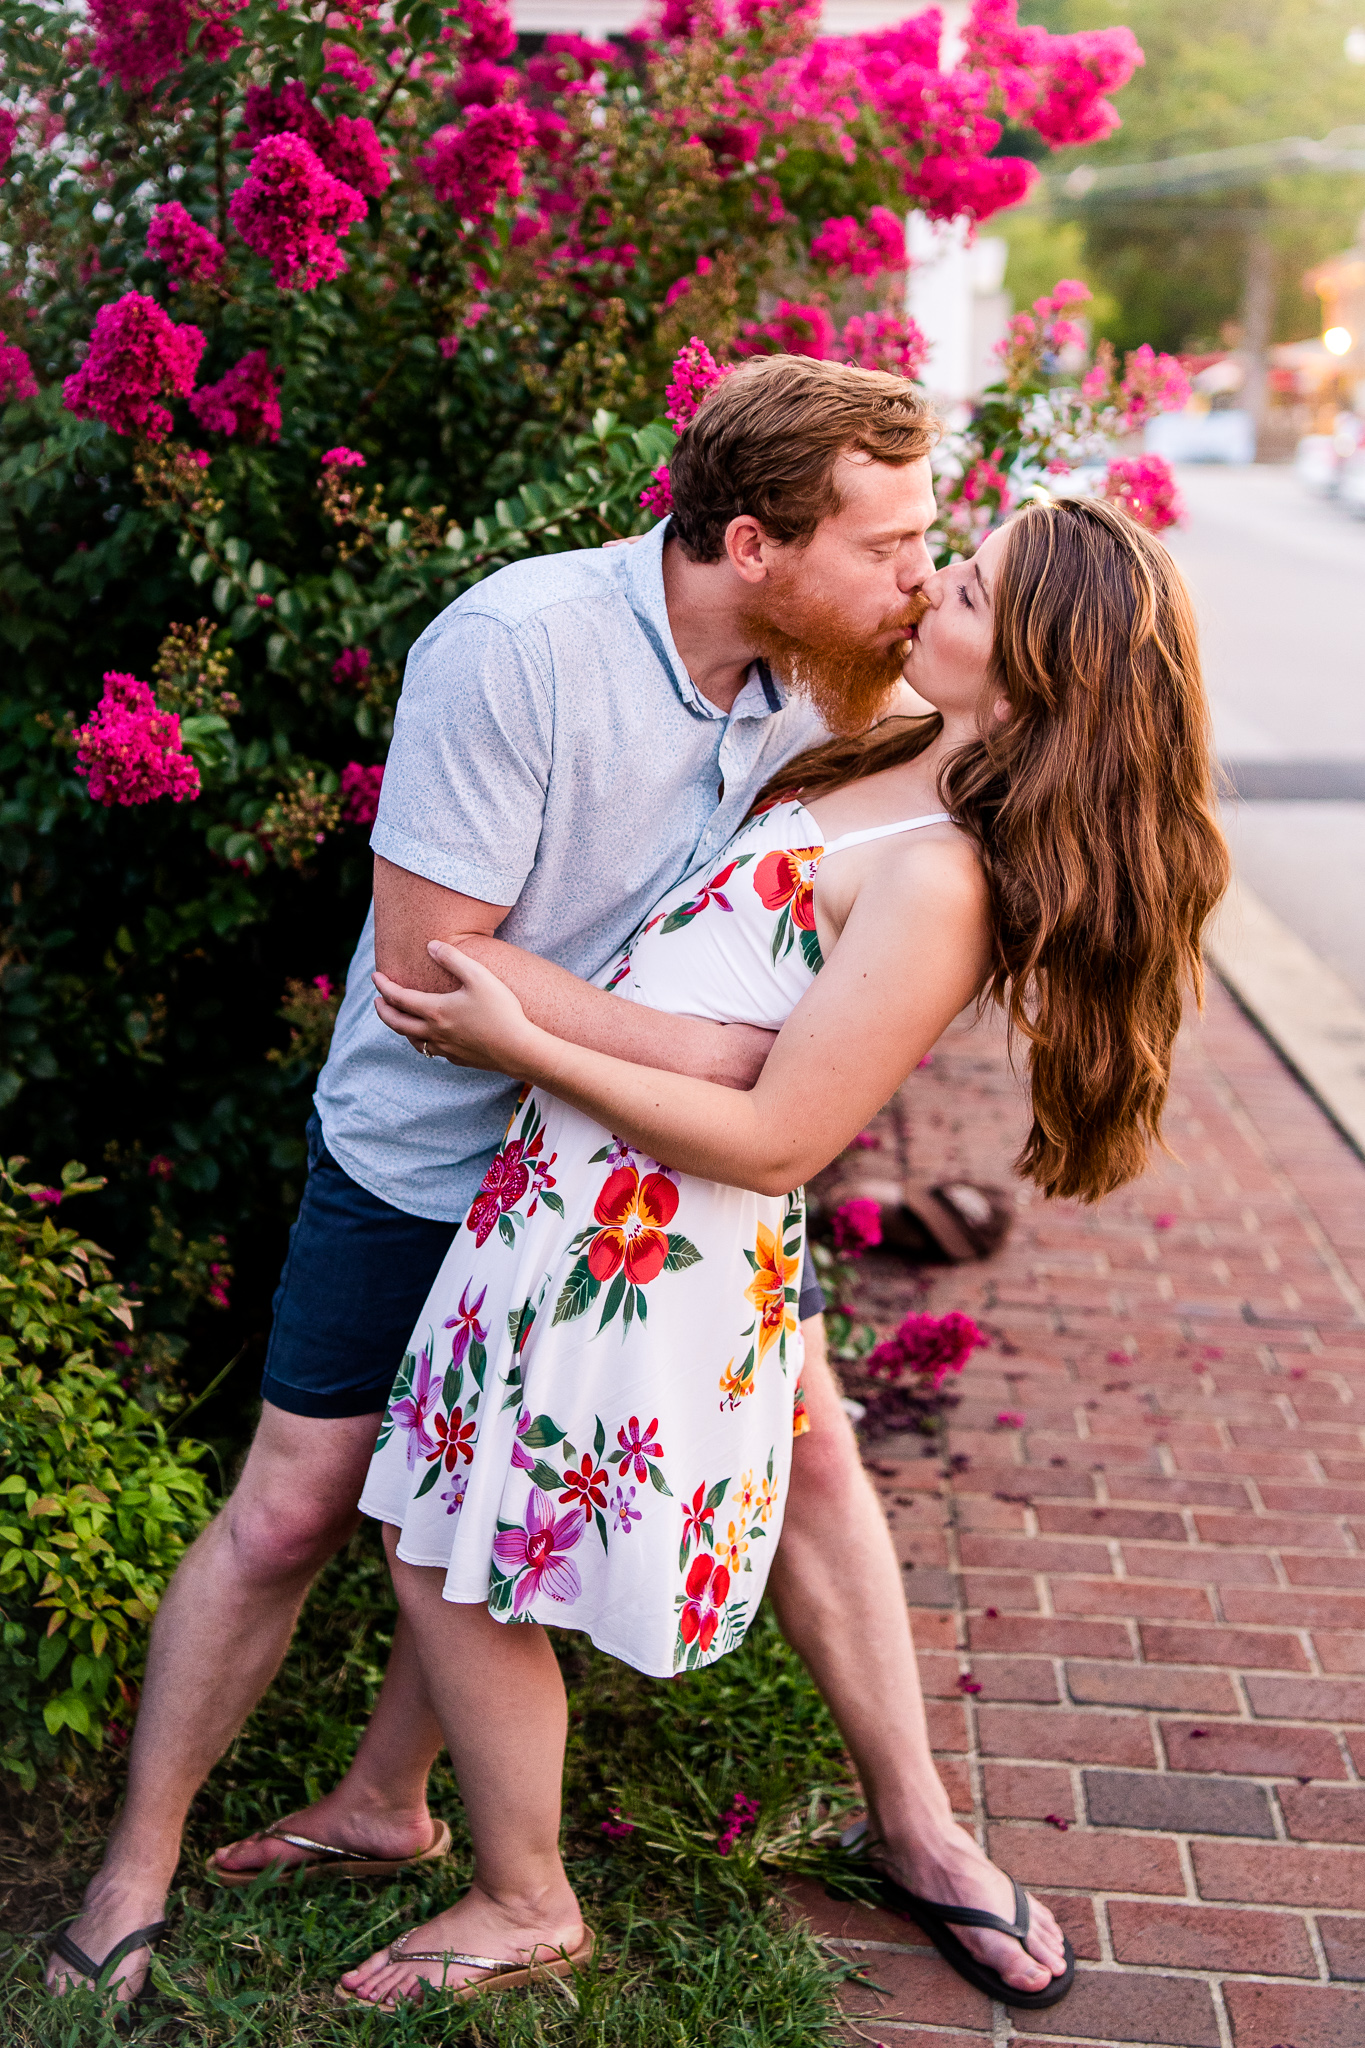 An engaged couple shares a dramatic kiss in front of a pink flowering tree during their summer sunset engagement session in Historic Occoquan, Northern Virginia